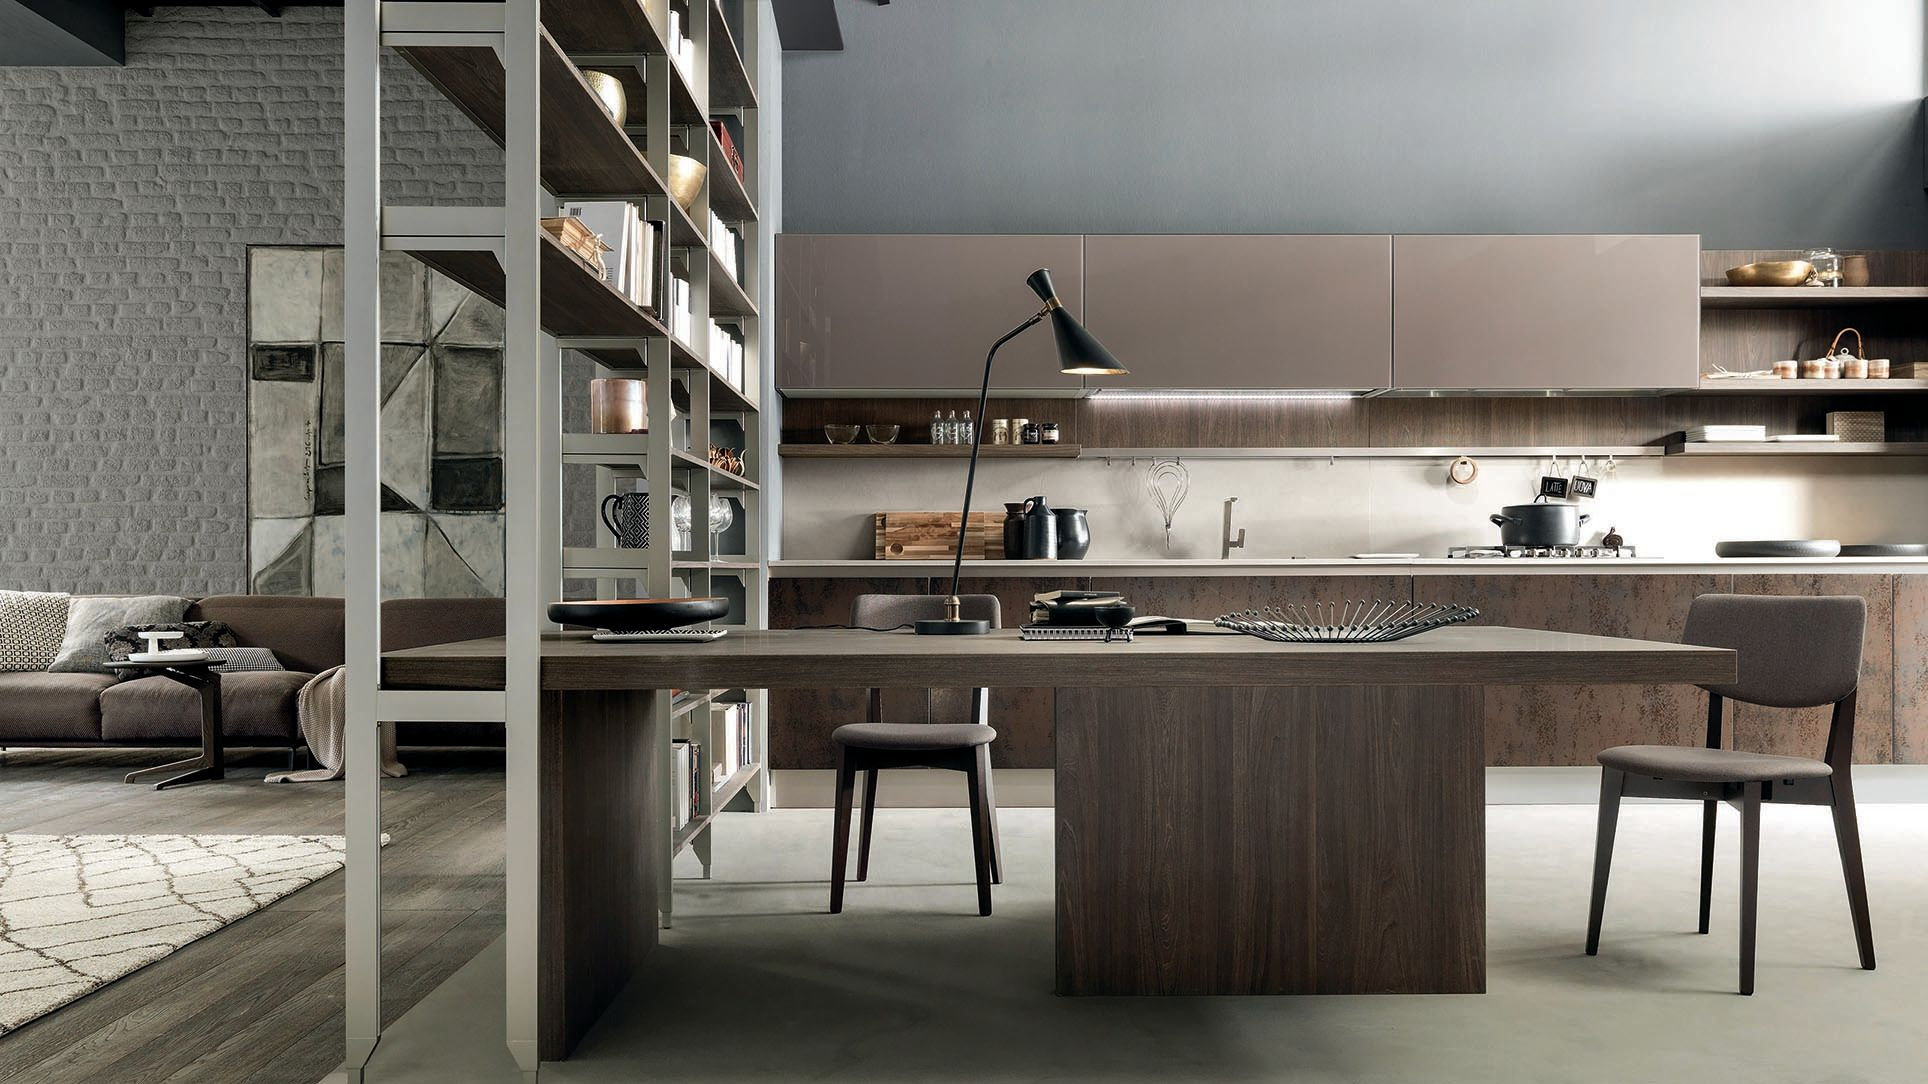 Febal Casa: kitchens, living rooms, sofas, master bedrooms